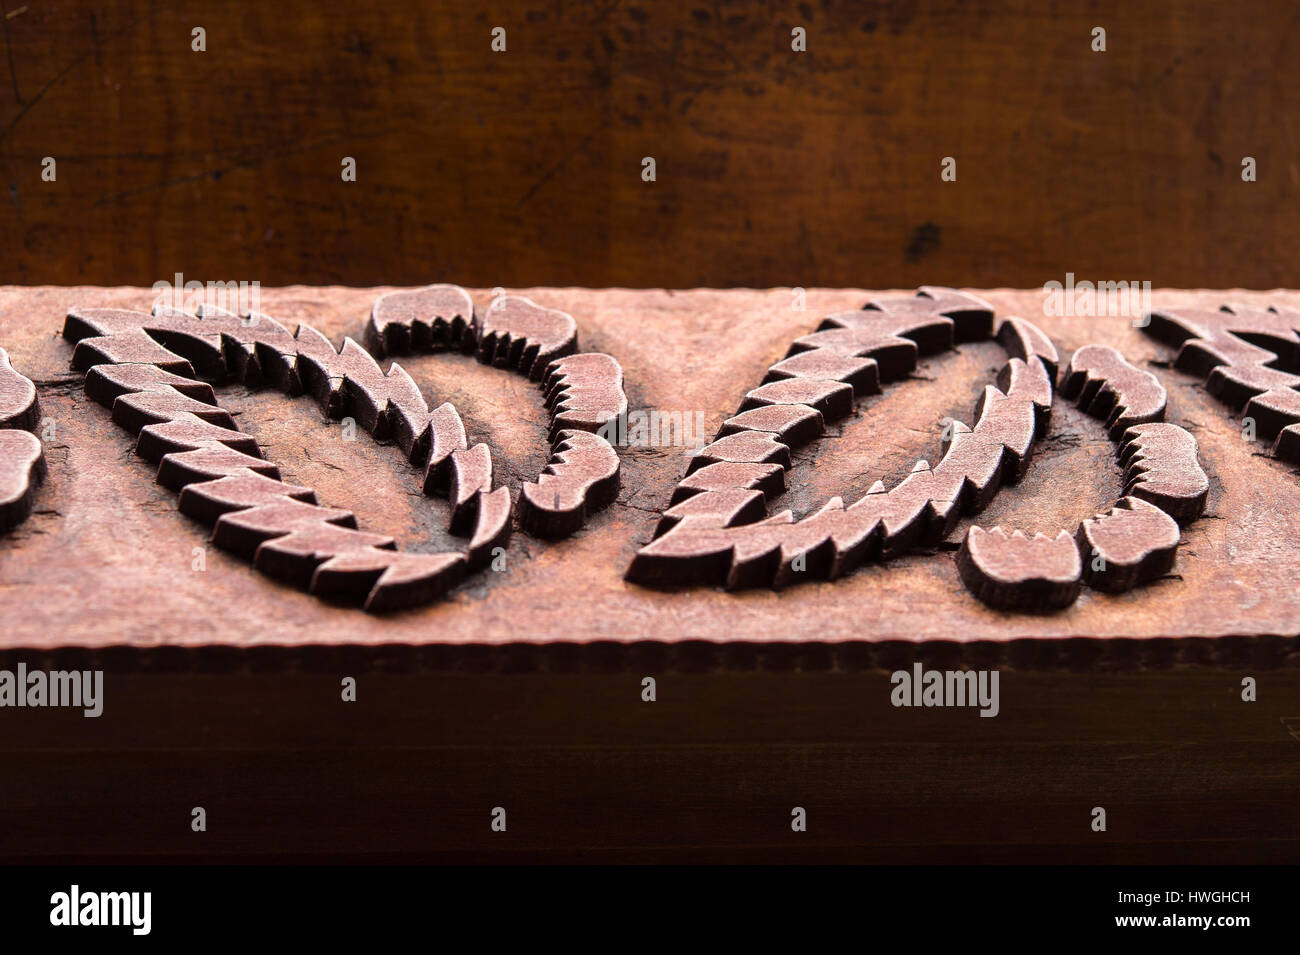 Block printing, woodblock with pattern made of wood, Bad Aussee, Styria, Austria - Stock Image